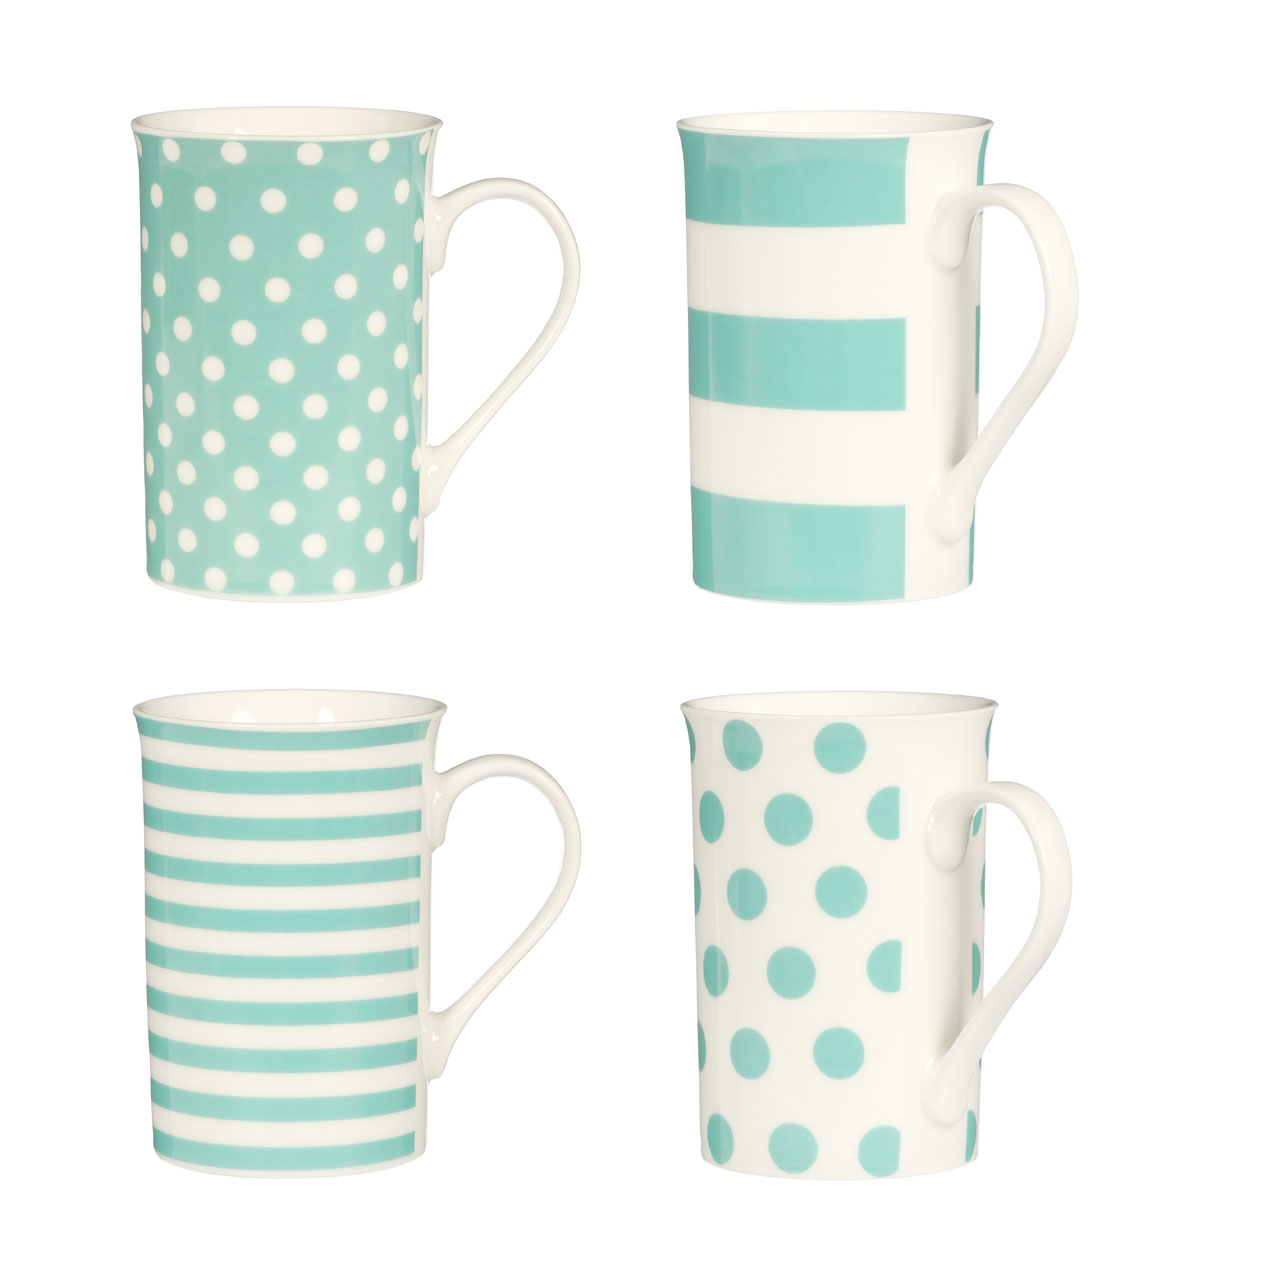 office mugs. Set Of 4 Coffee Mugs White Turquoise Spots Stripes Porcelain Home Office Tea Cup